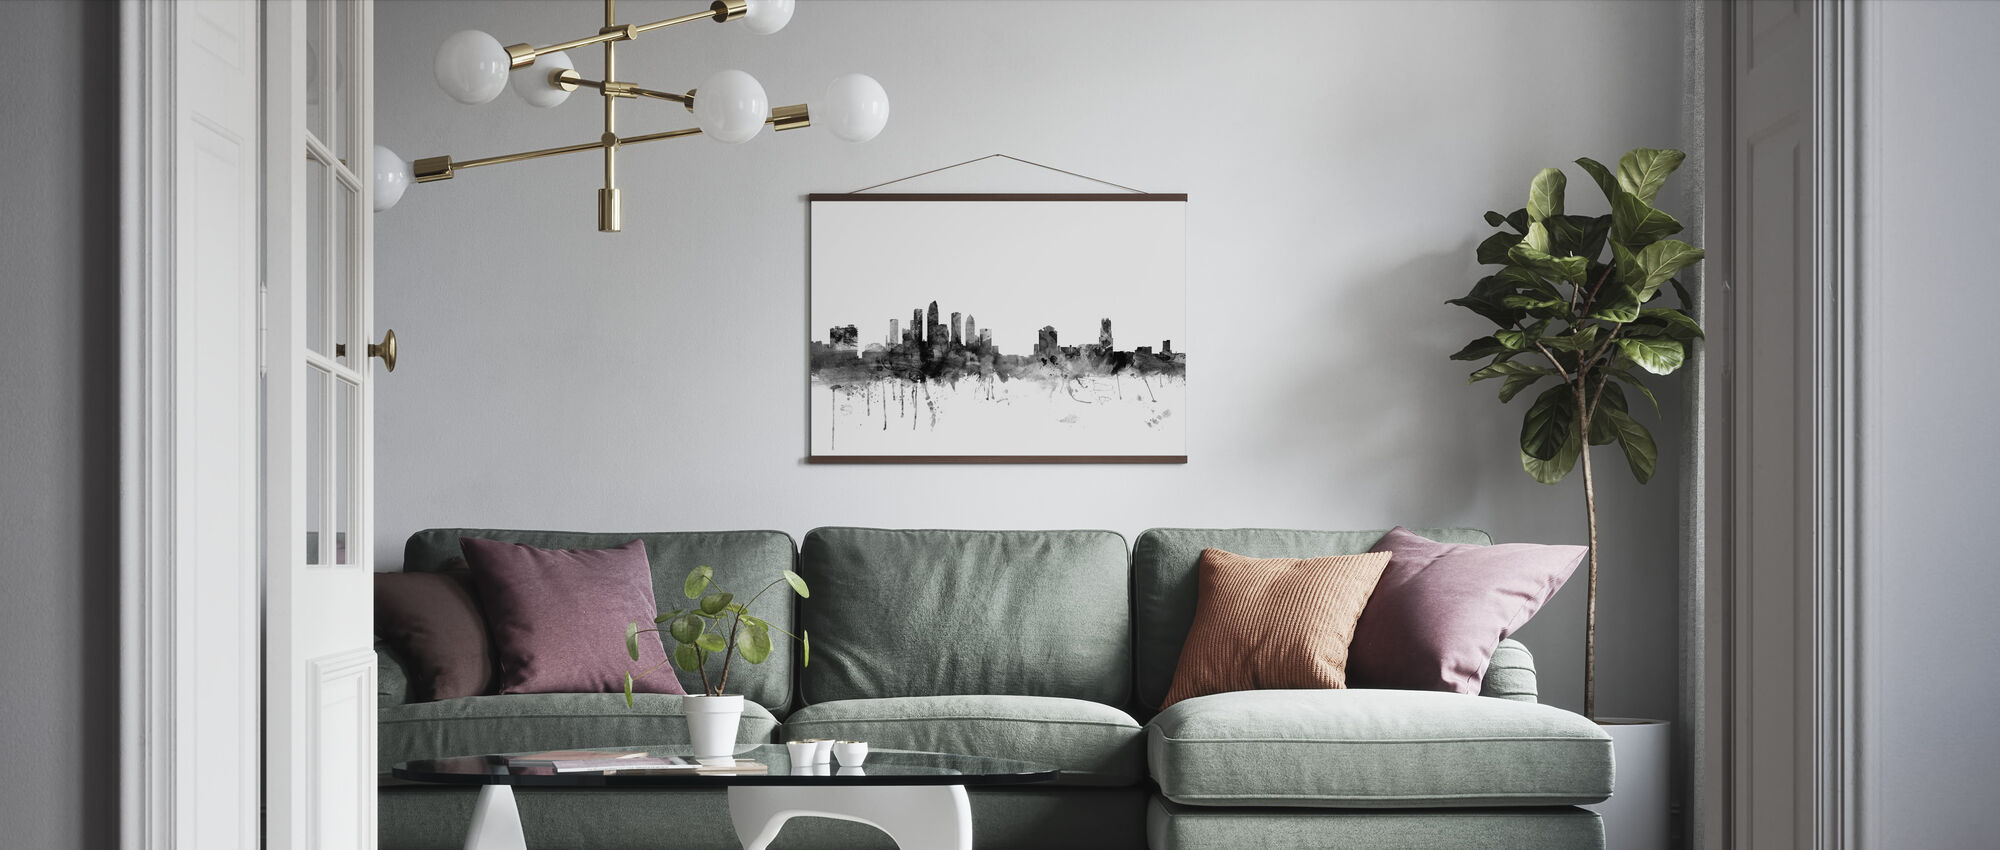 Tampa Florida Skyline Black - Poster - Living Room